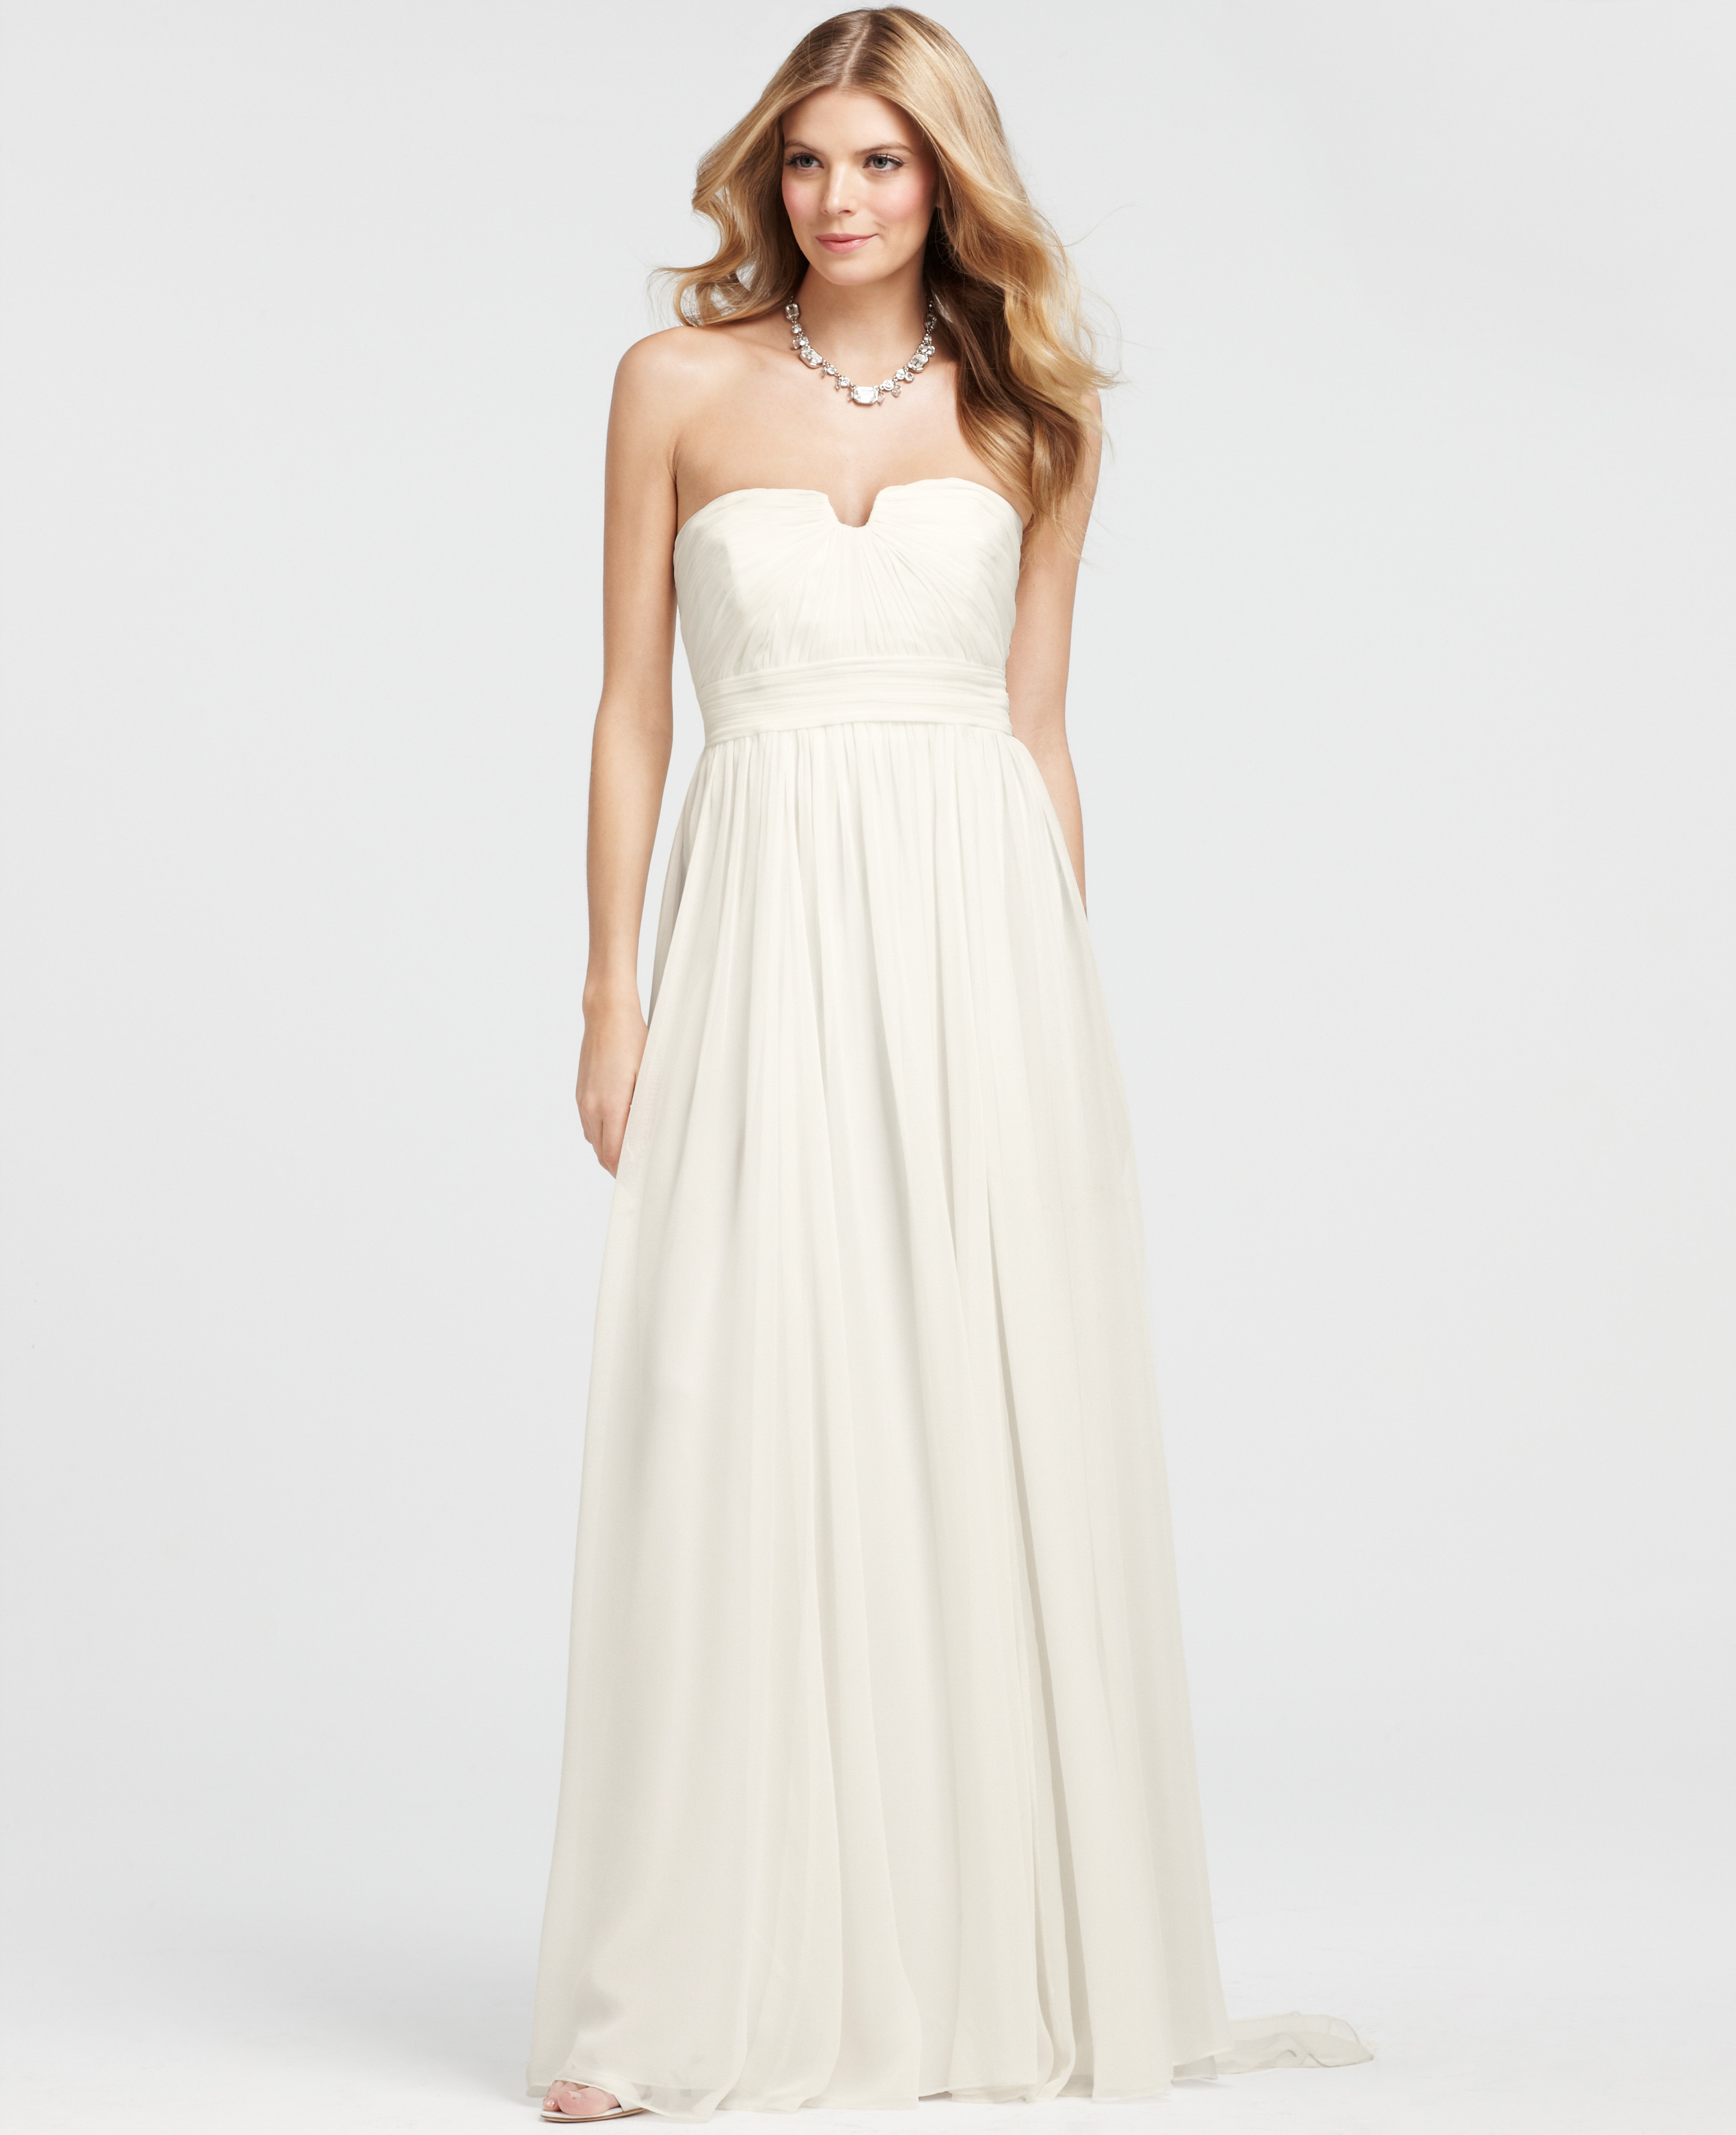 Ann Taylor Vintage Silk Strapless Wedding Dress In